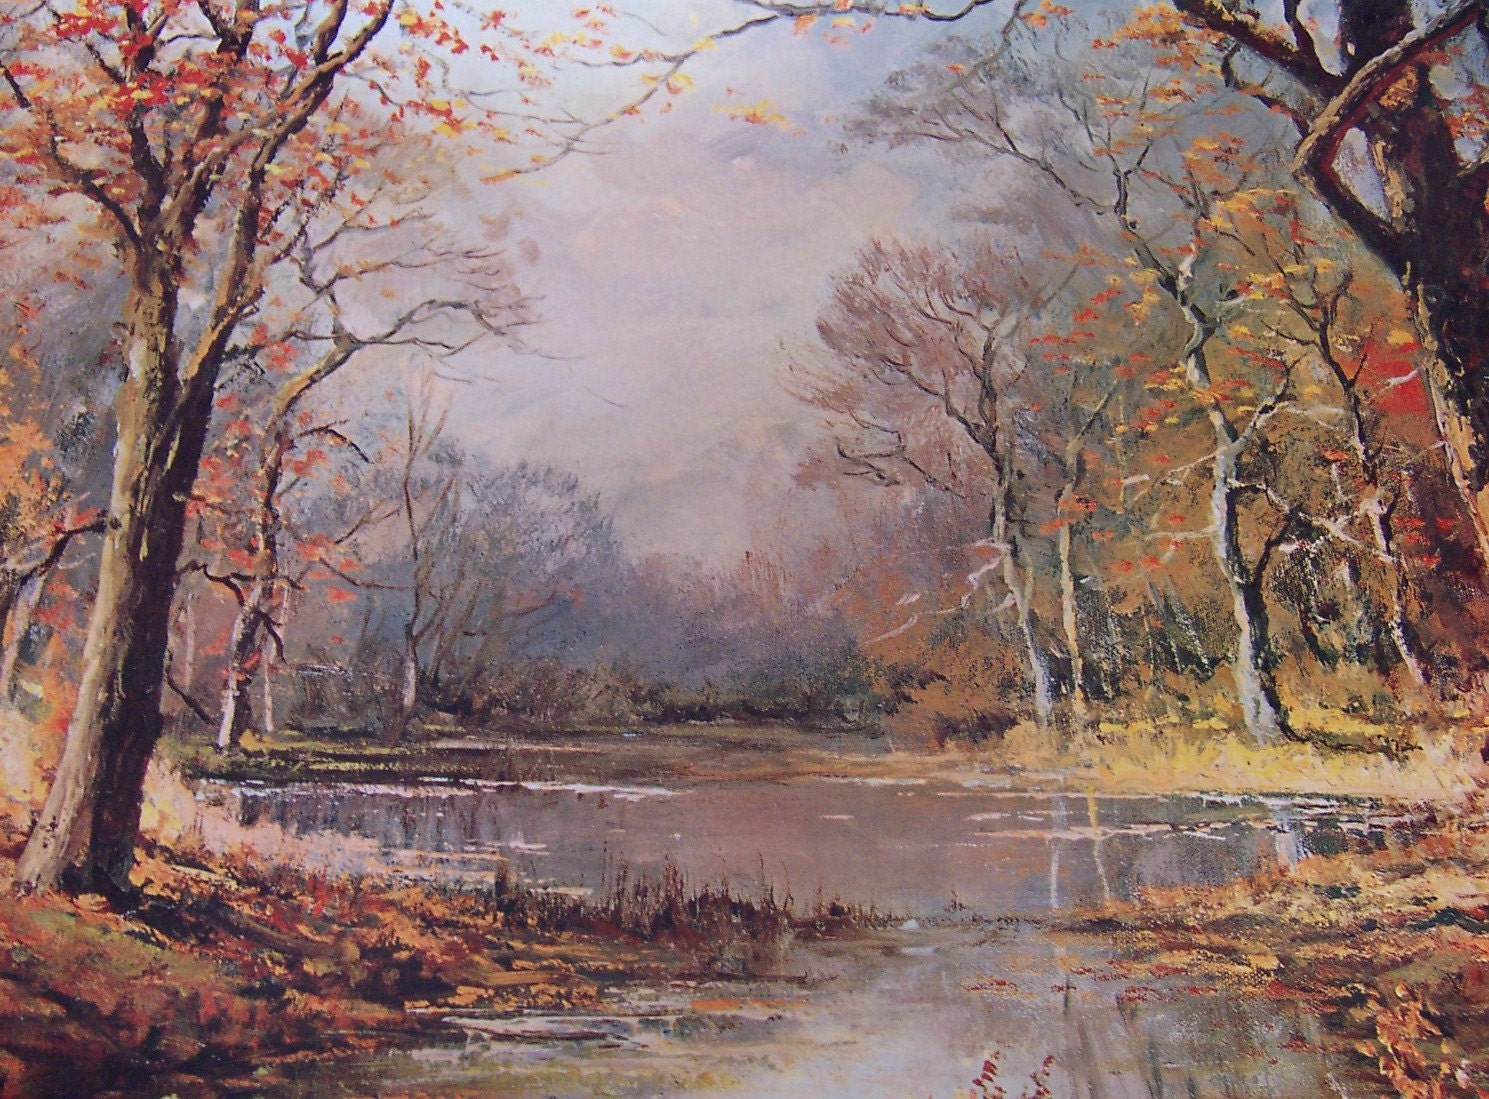 Robert Wood Painting Value